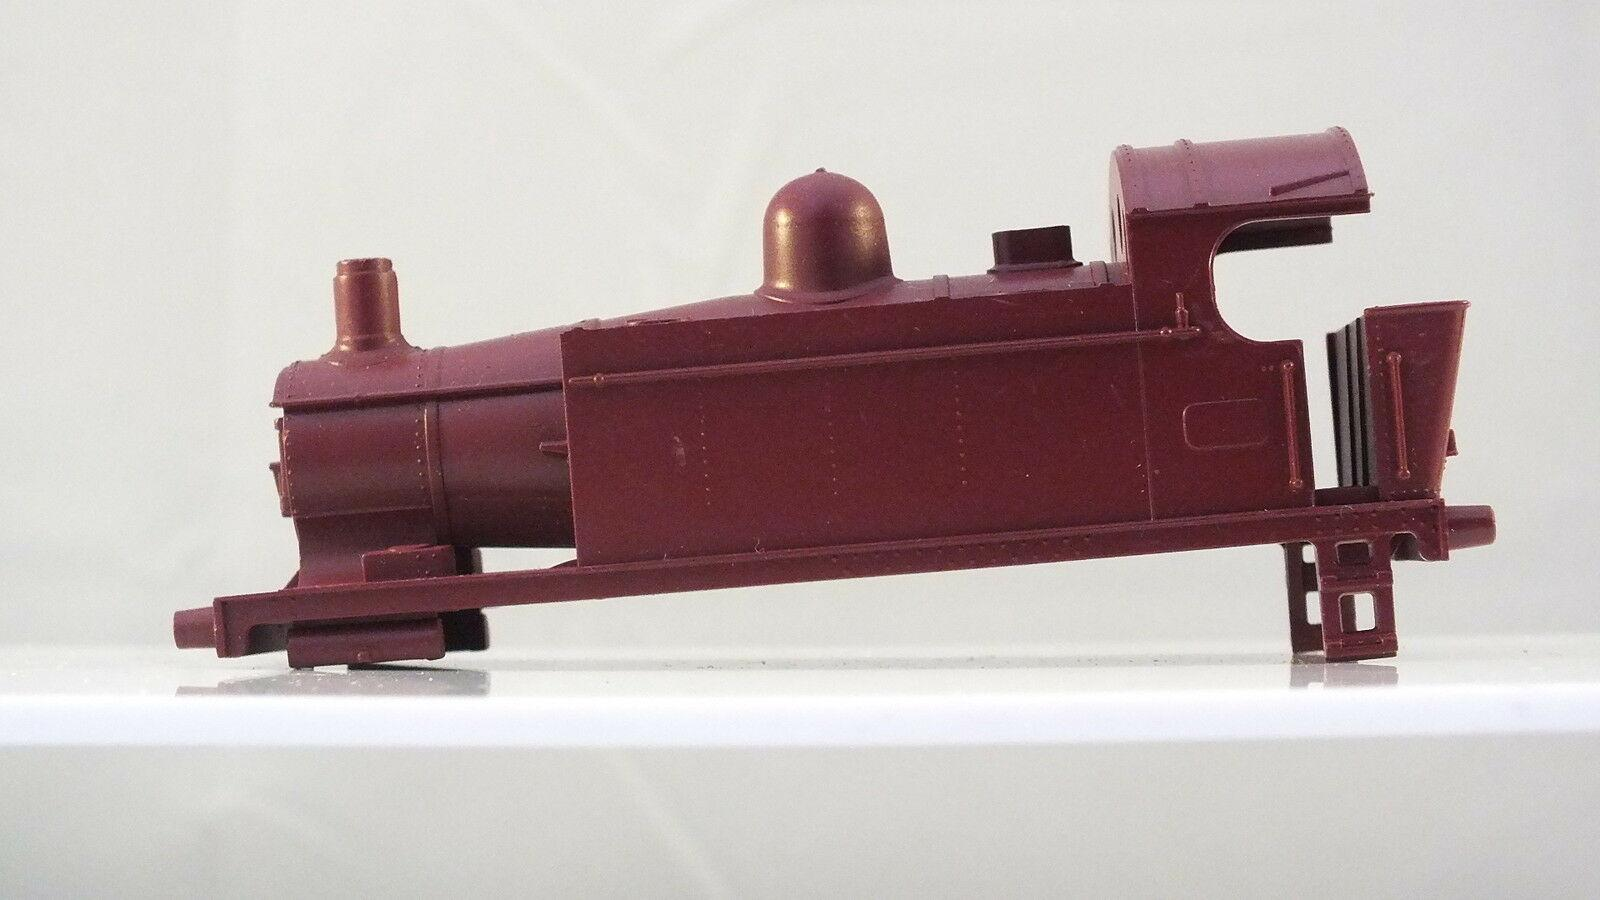 S9786/7 # HORNBY TRIANG 0-4-0 TANK BARE BODY MAROON NO FITTINGS   R16A